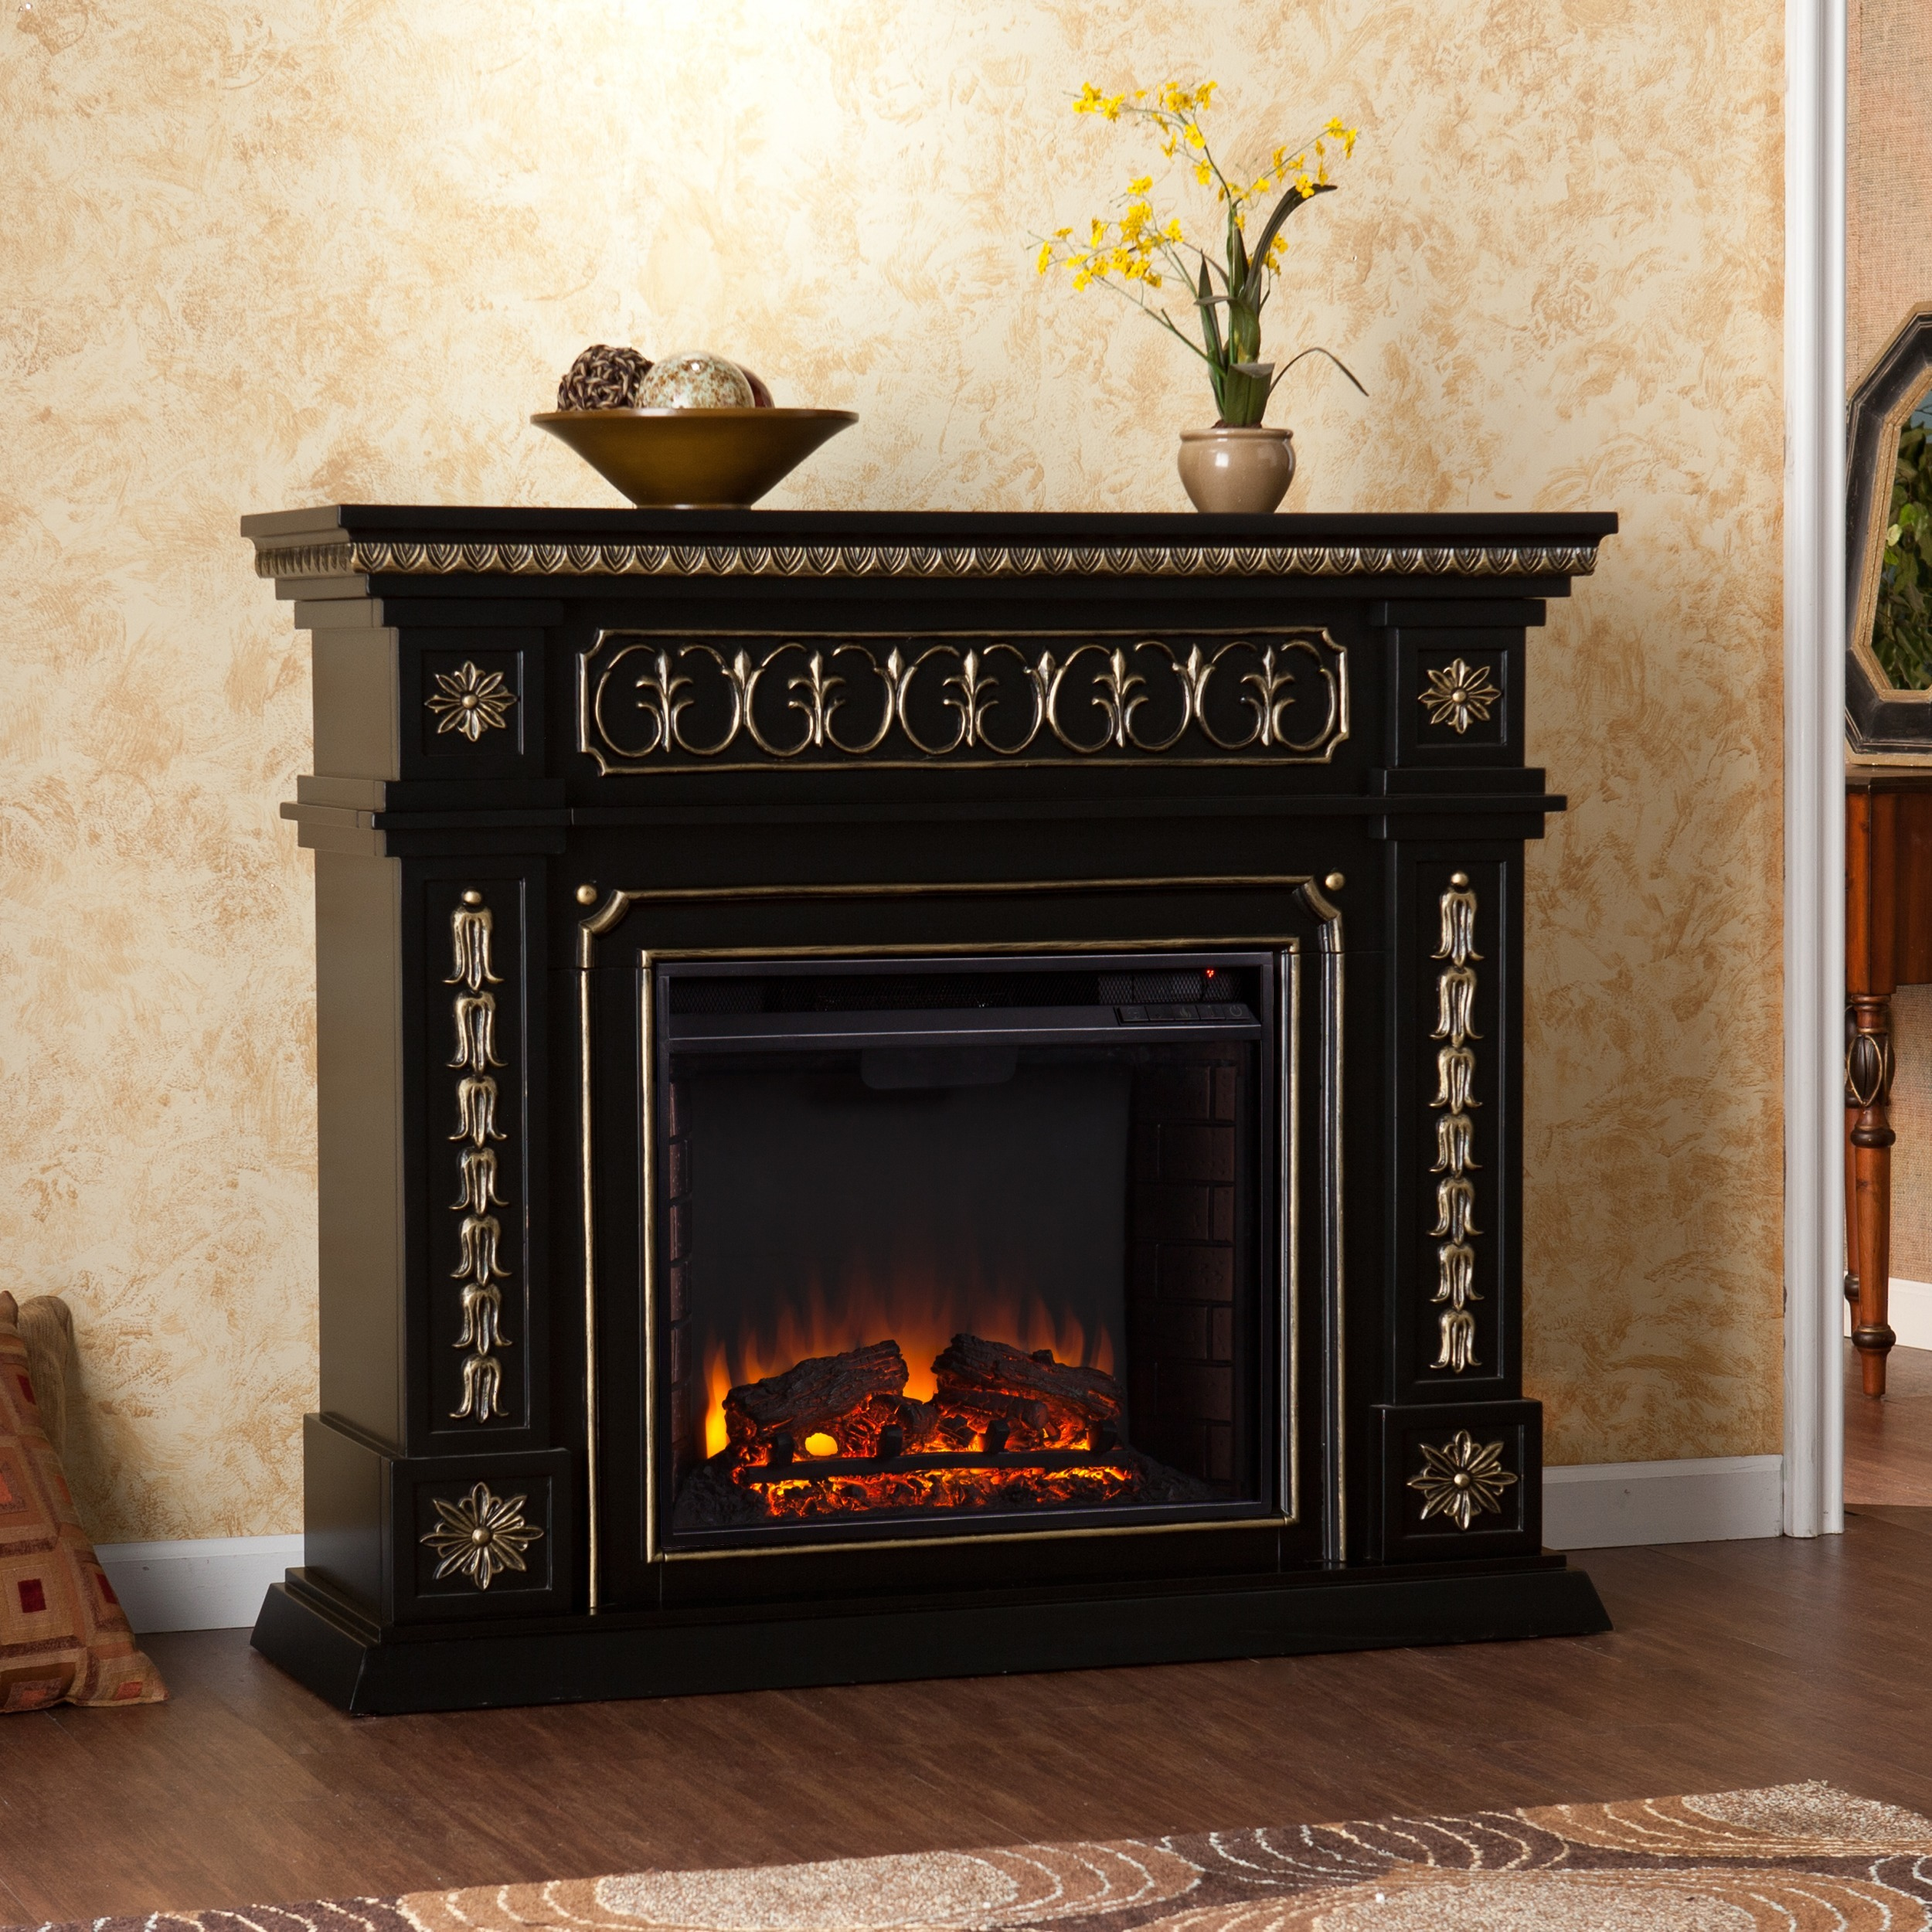 Walmart Black Electric Fireplace Harper Blvd Alessia Black Electric Fireplace Walmart